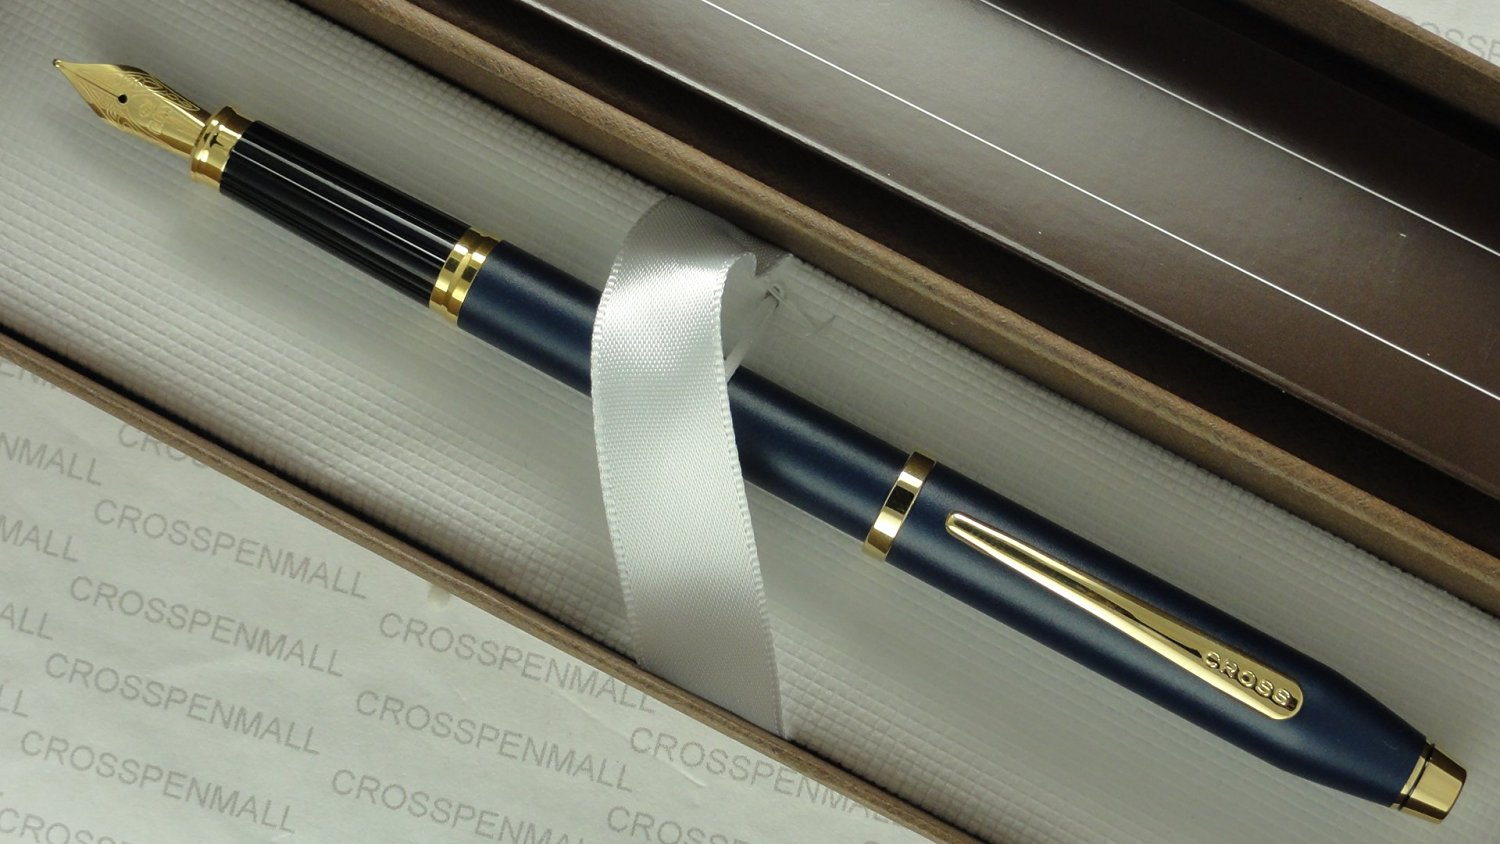 Cross Century II Limited Series , Satin Matte Blue Barrel with 23KT Gold Appointments , and 23KT Gold Medium nib Fountain Pen in Pristine Cross Gift Box